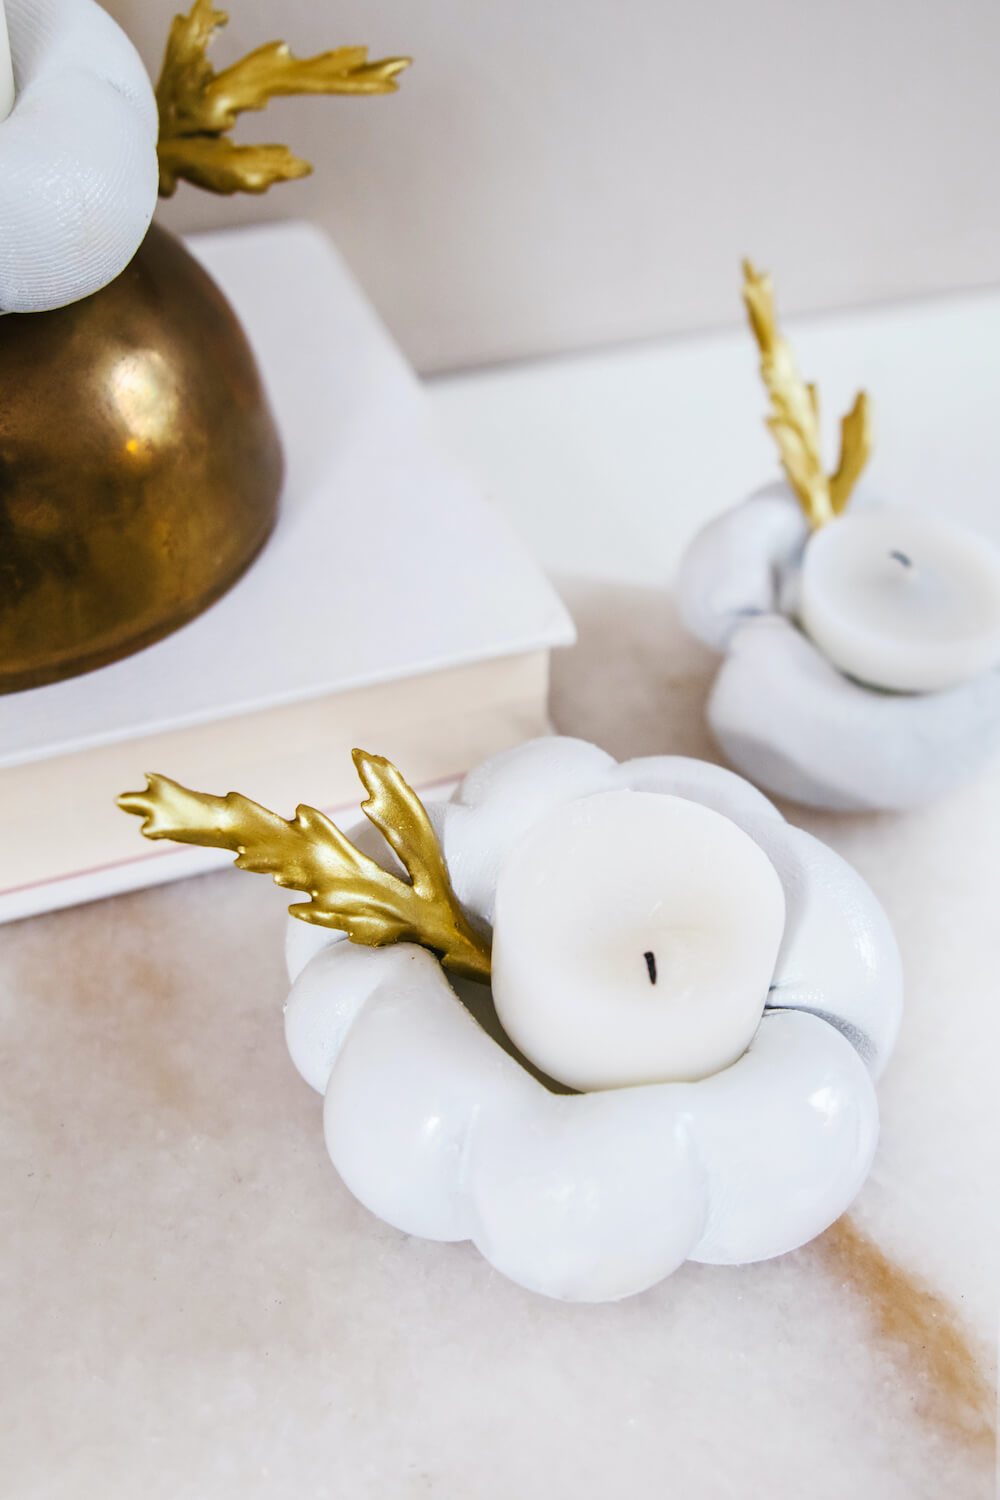 Crafts to decorate your home.